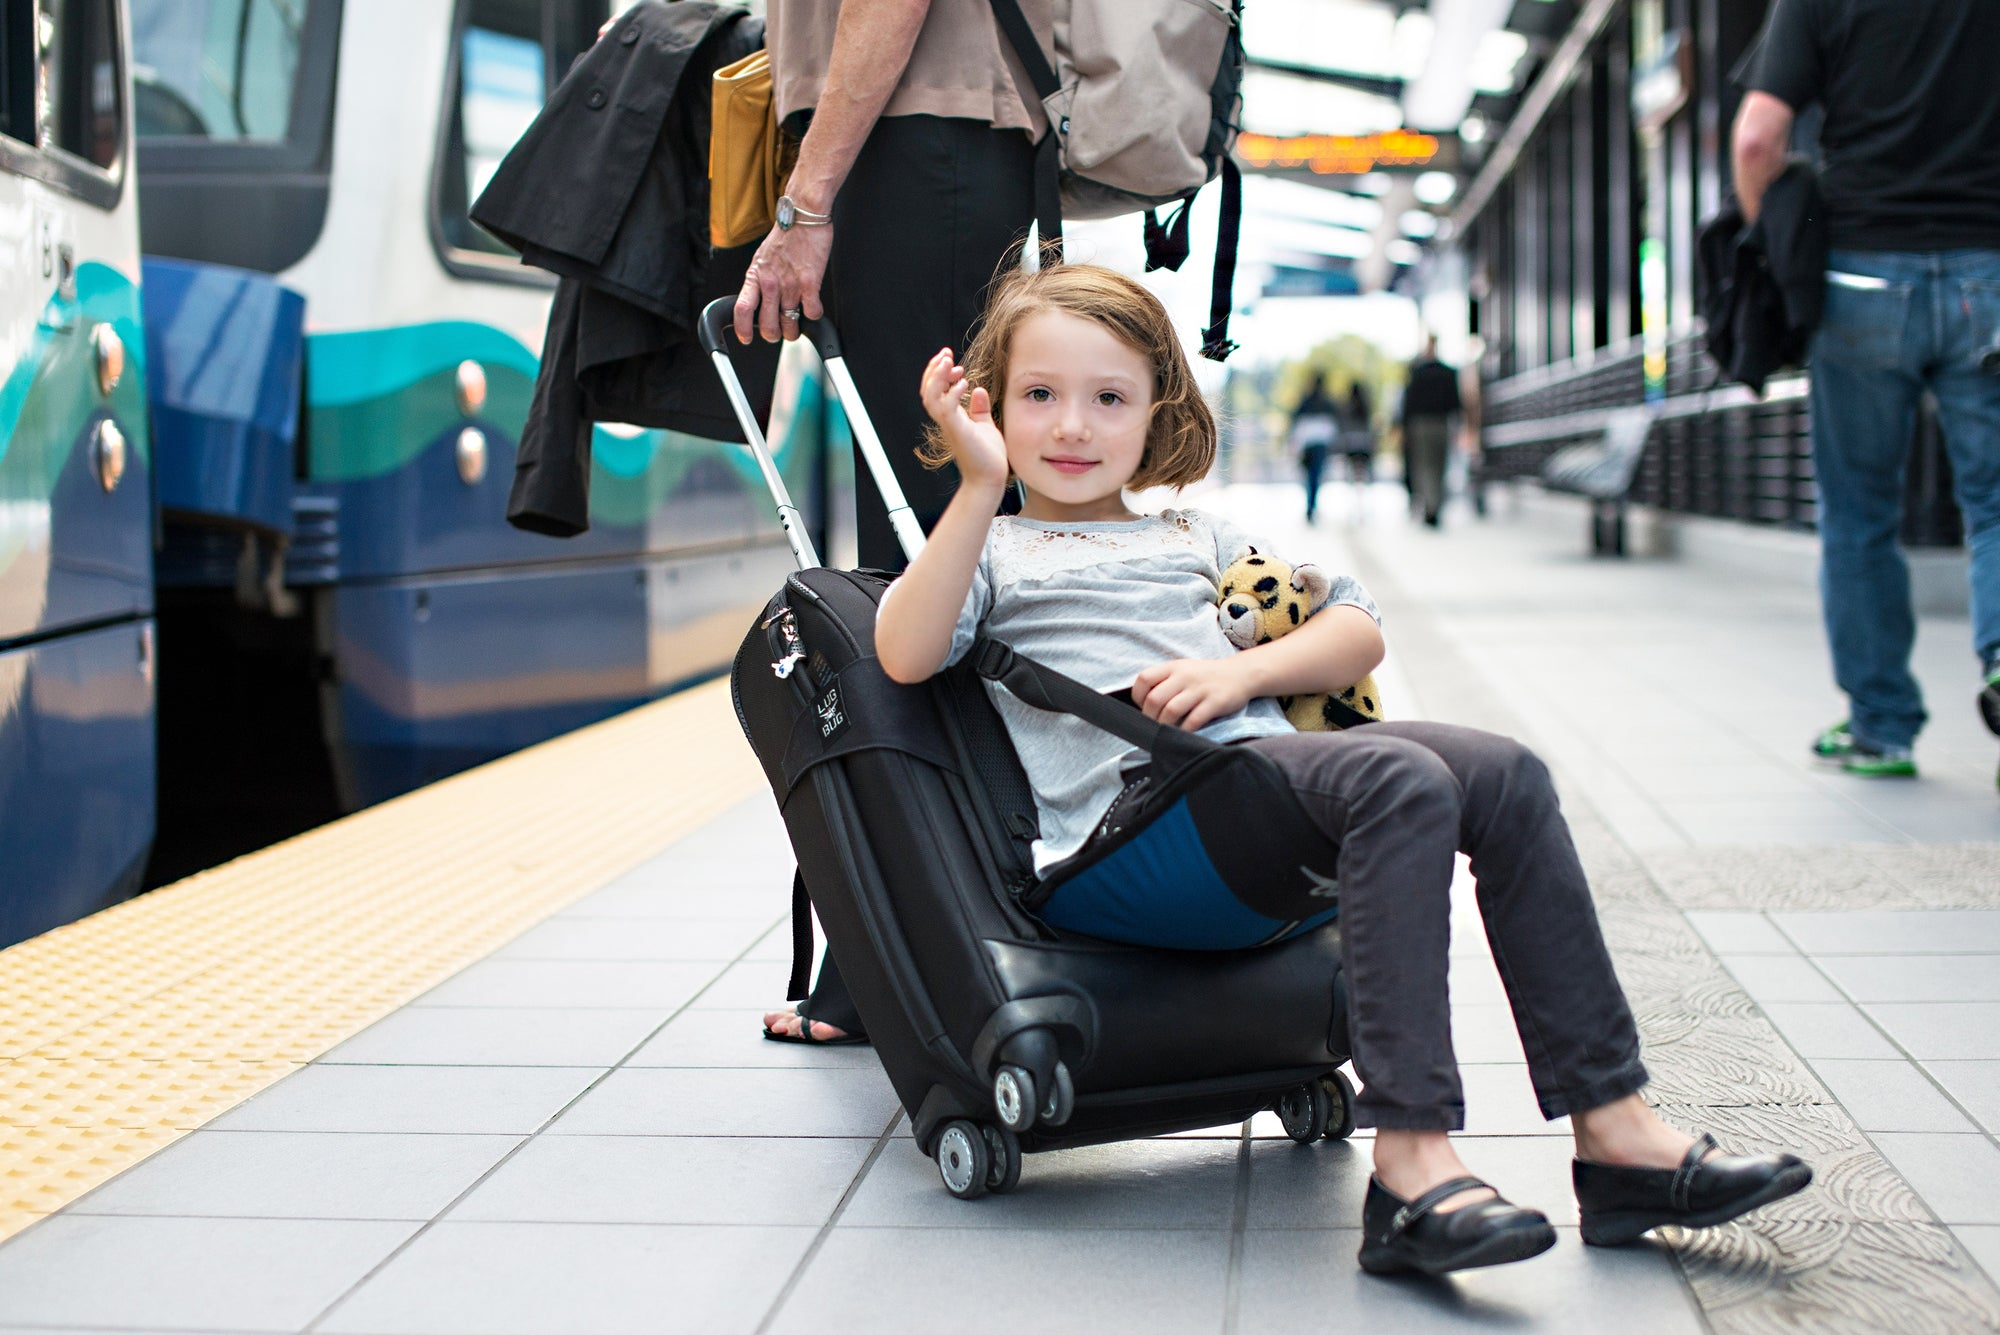 little girl sitting on suitcase seat